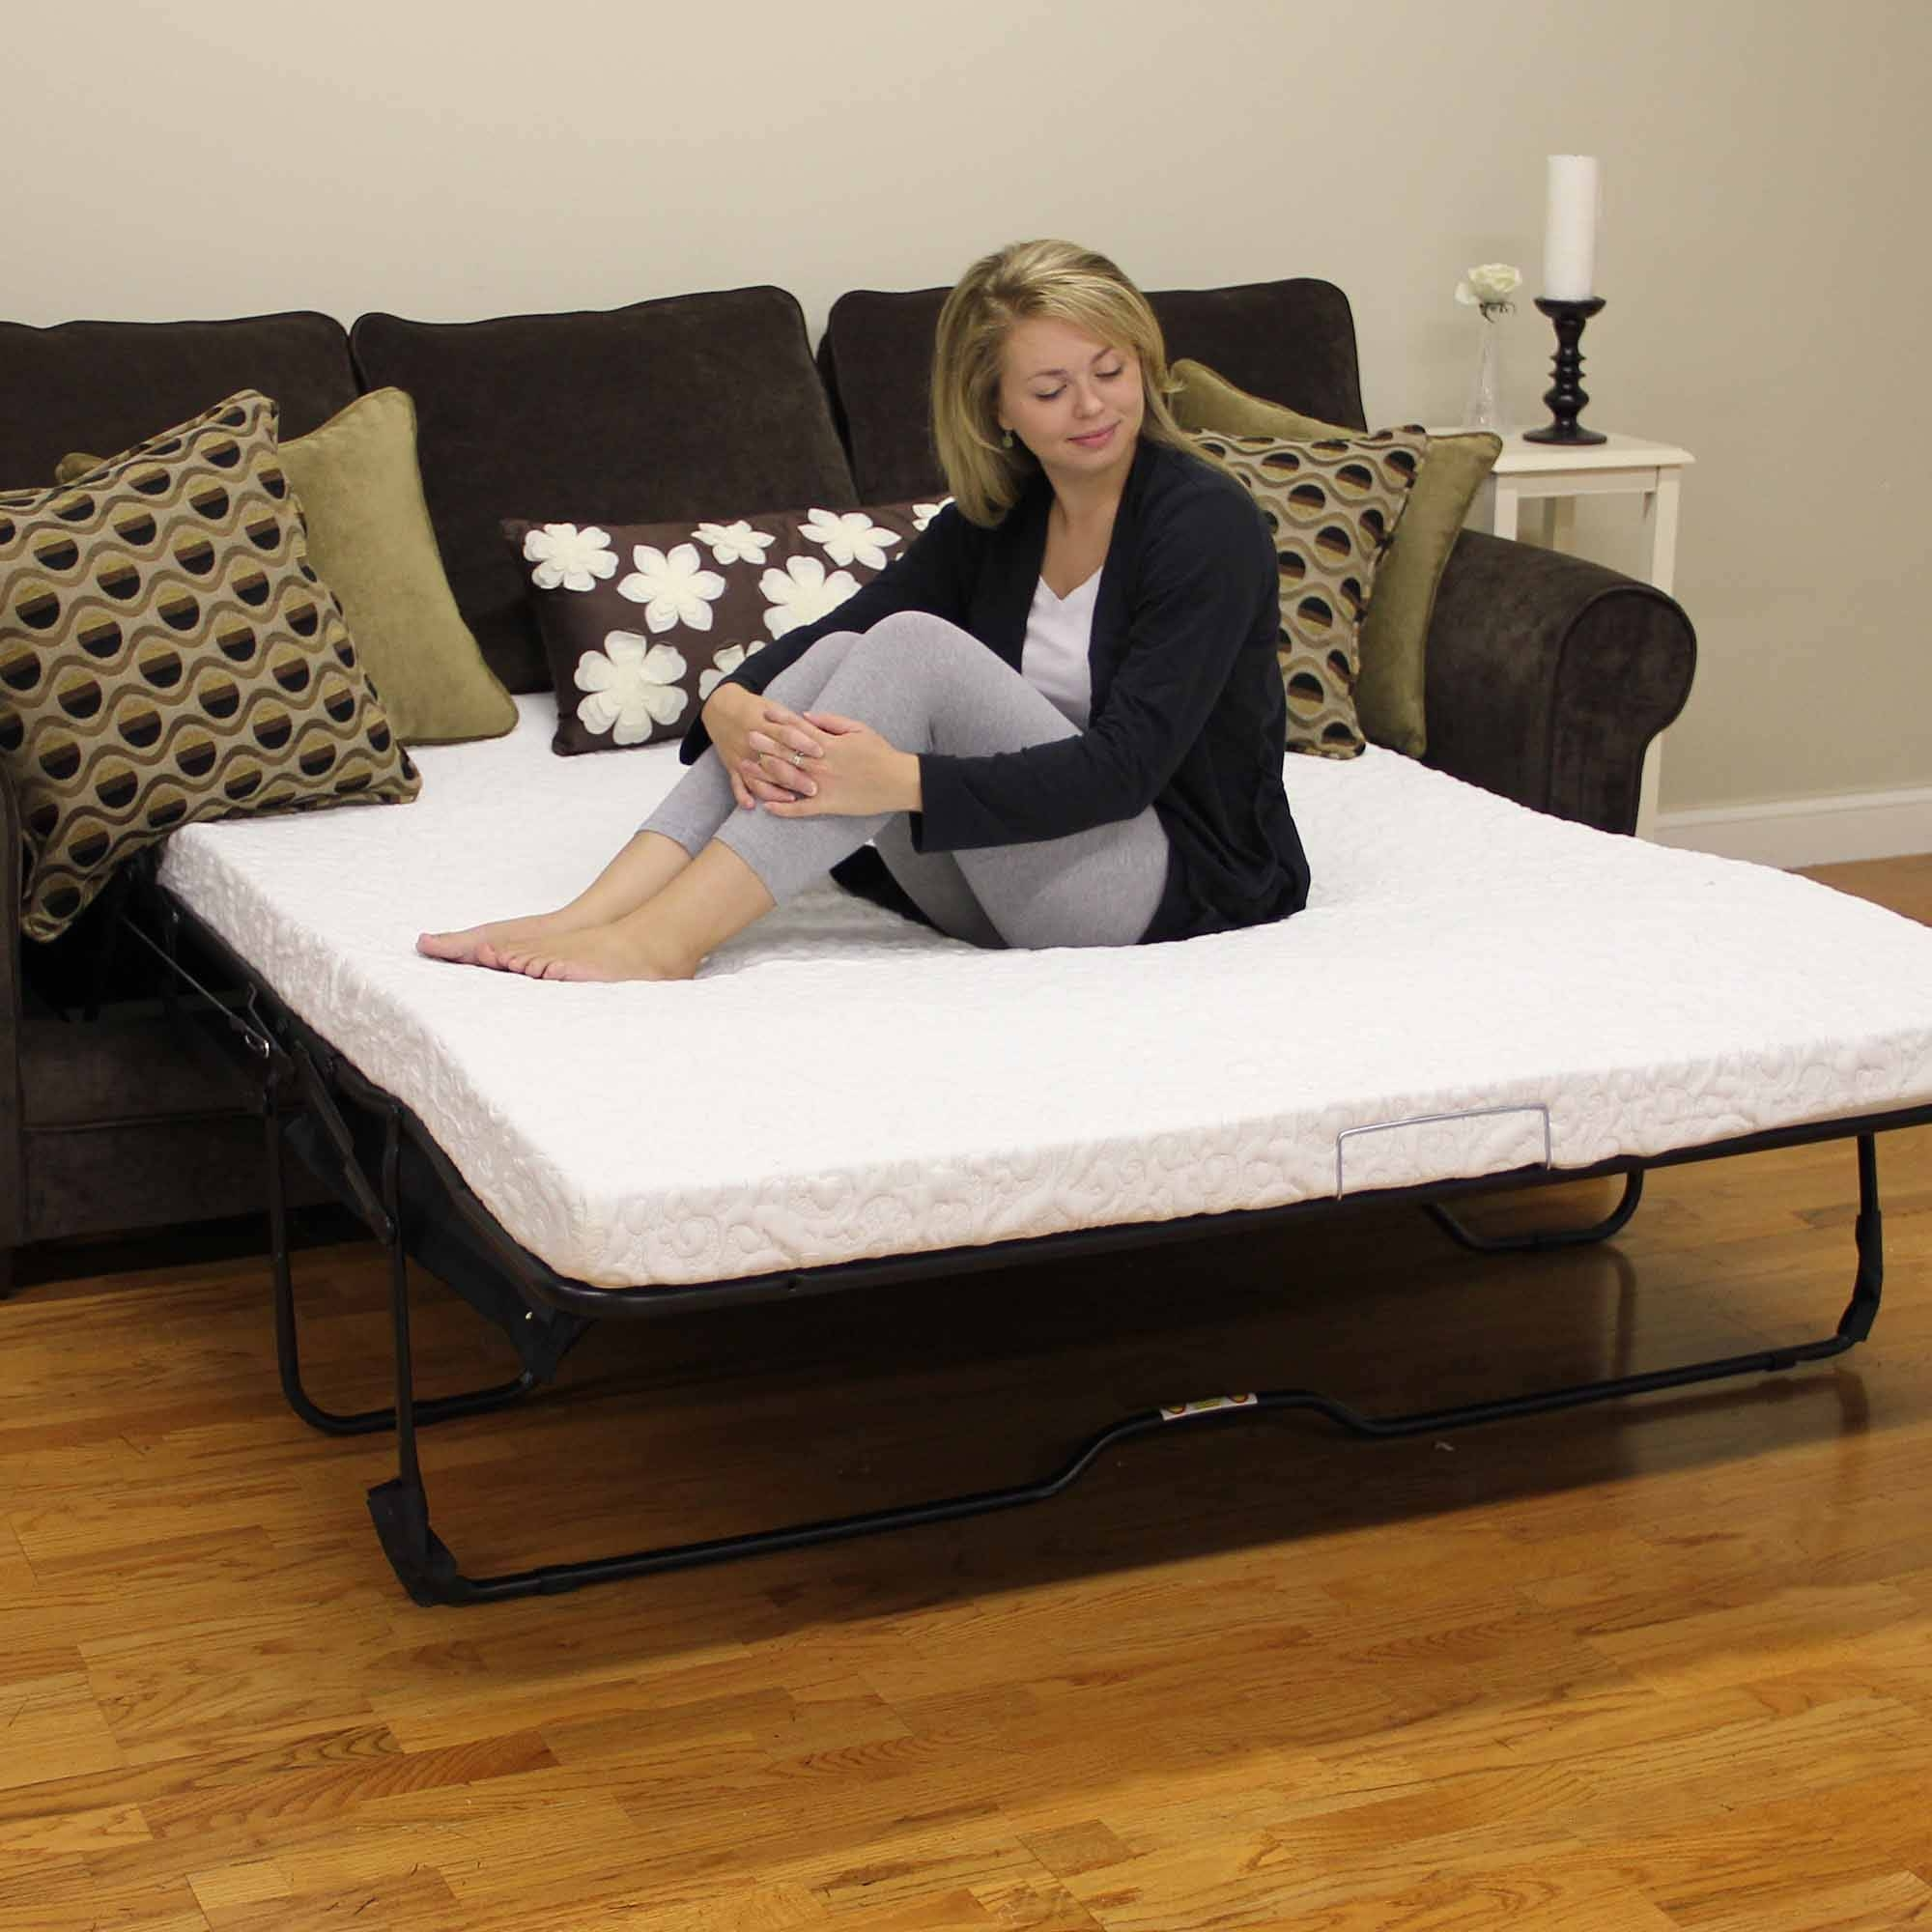 "Modern Sleep Cool Gel 4.5"" Gel Memory Foam Sofa Bed Mattress intended for Sofa Beds With Mattress Support (Image 8 of 15)"